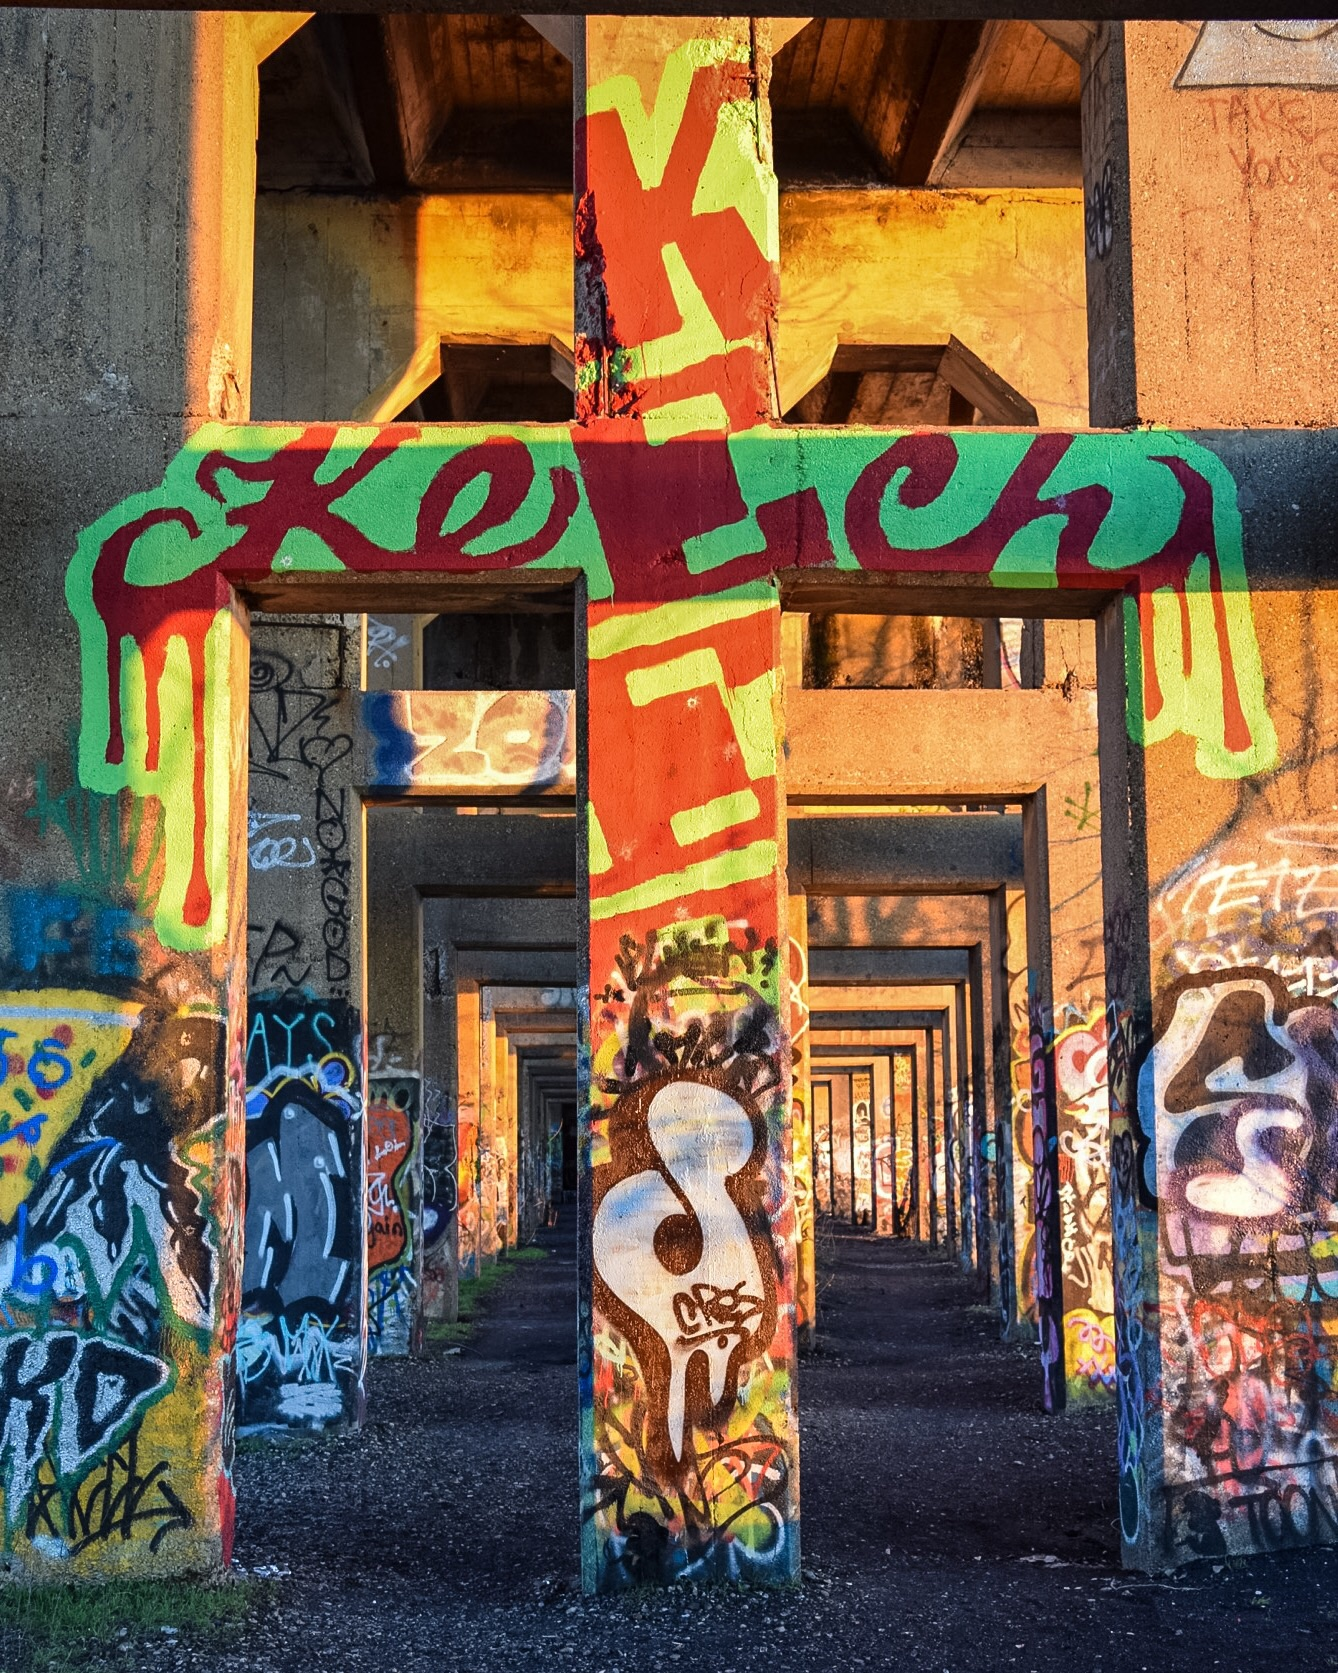 Keech is one of the city's premier graffiti artists, known for his big, bold, and colorful pieces.